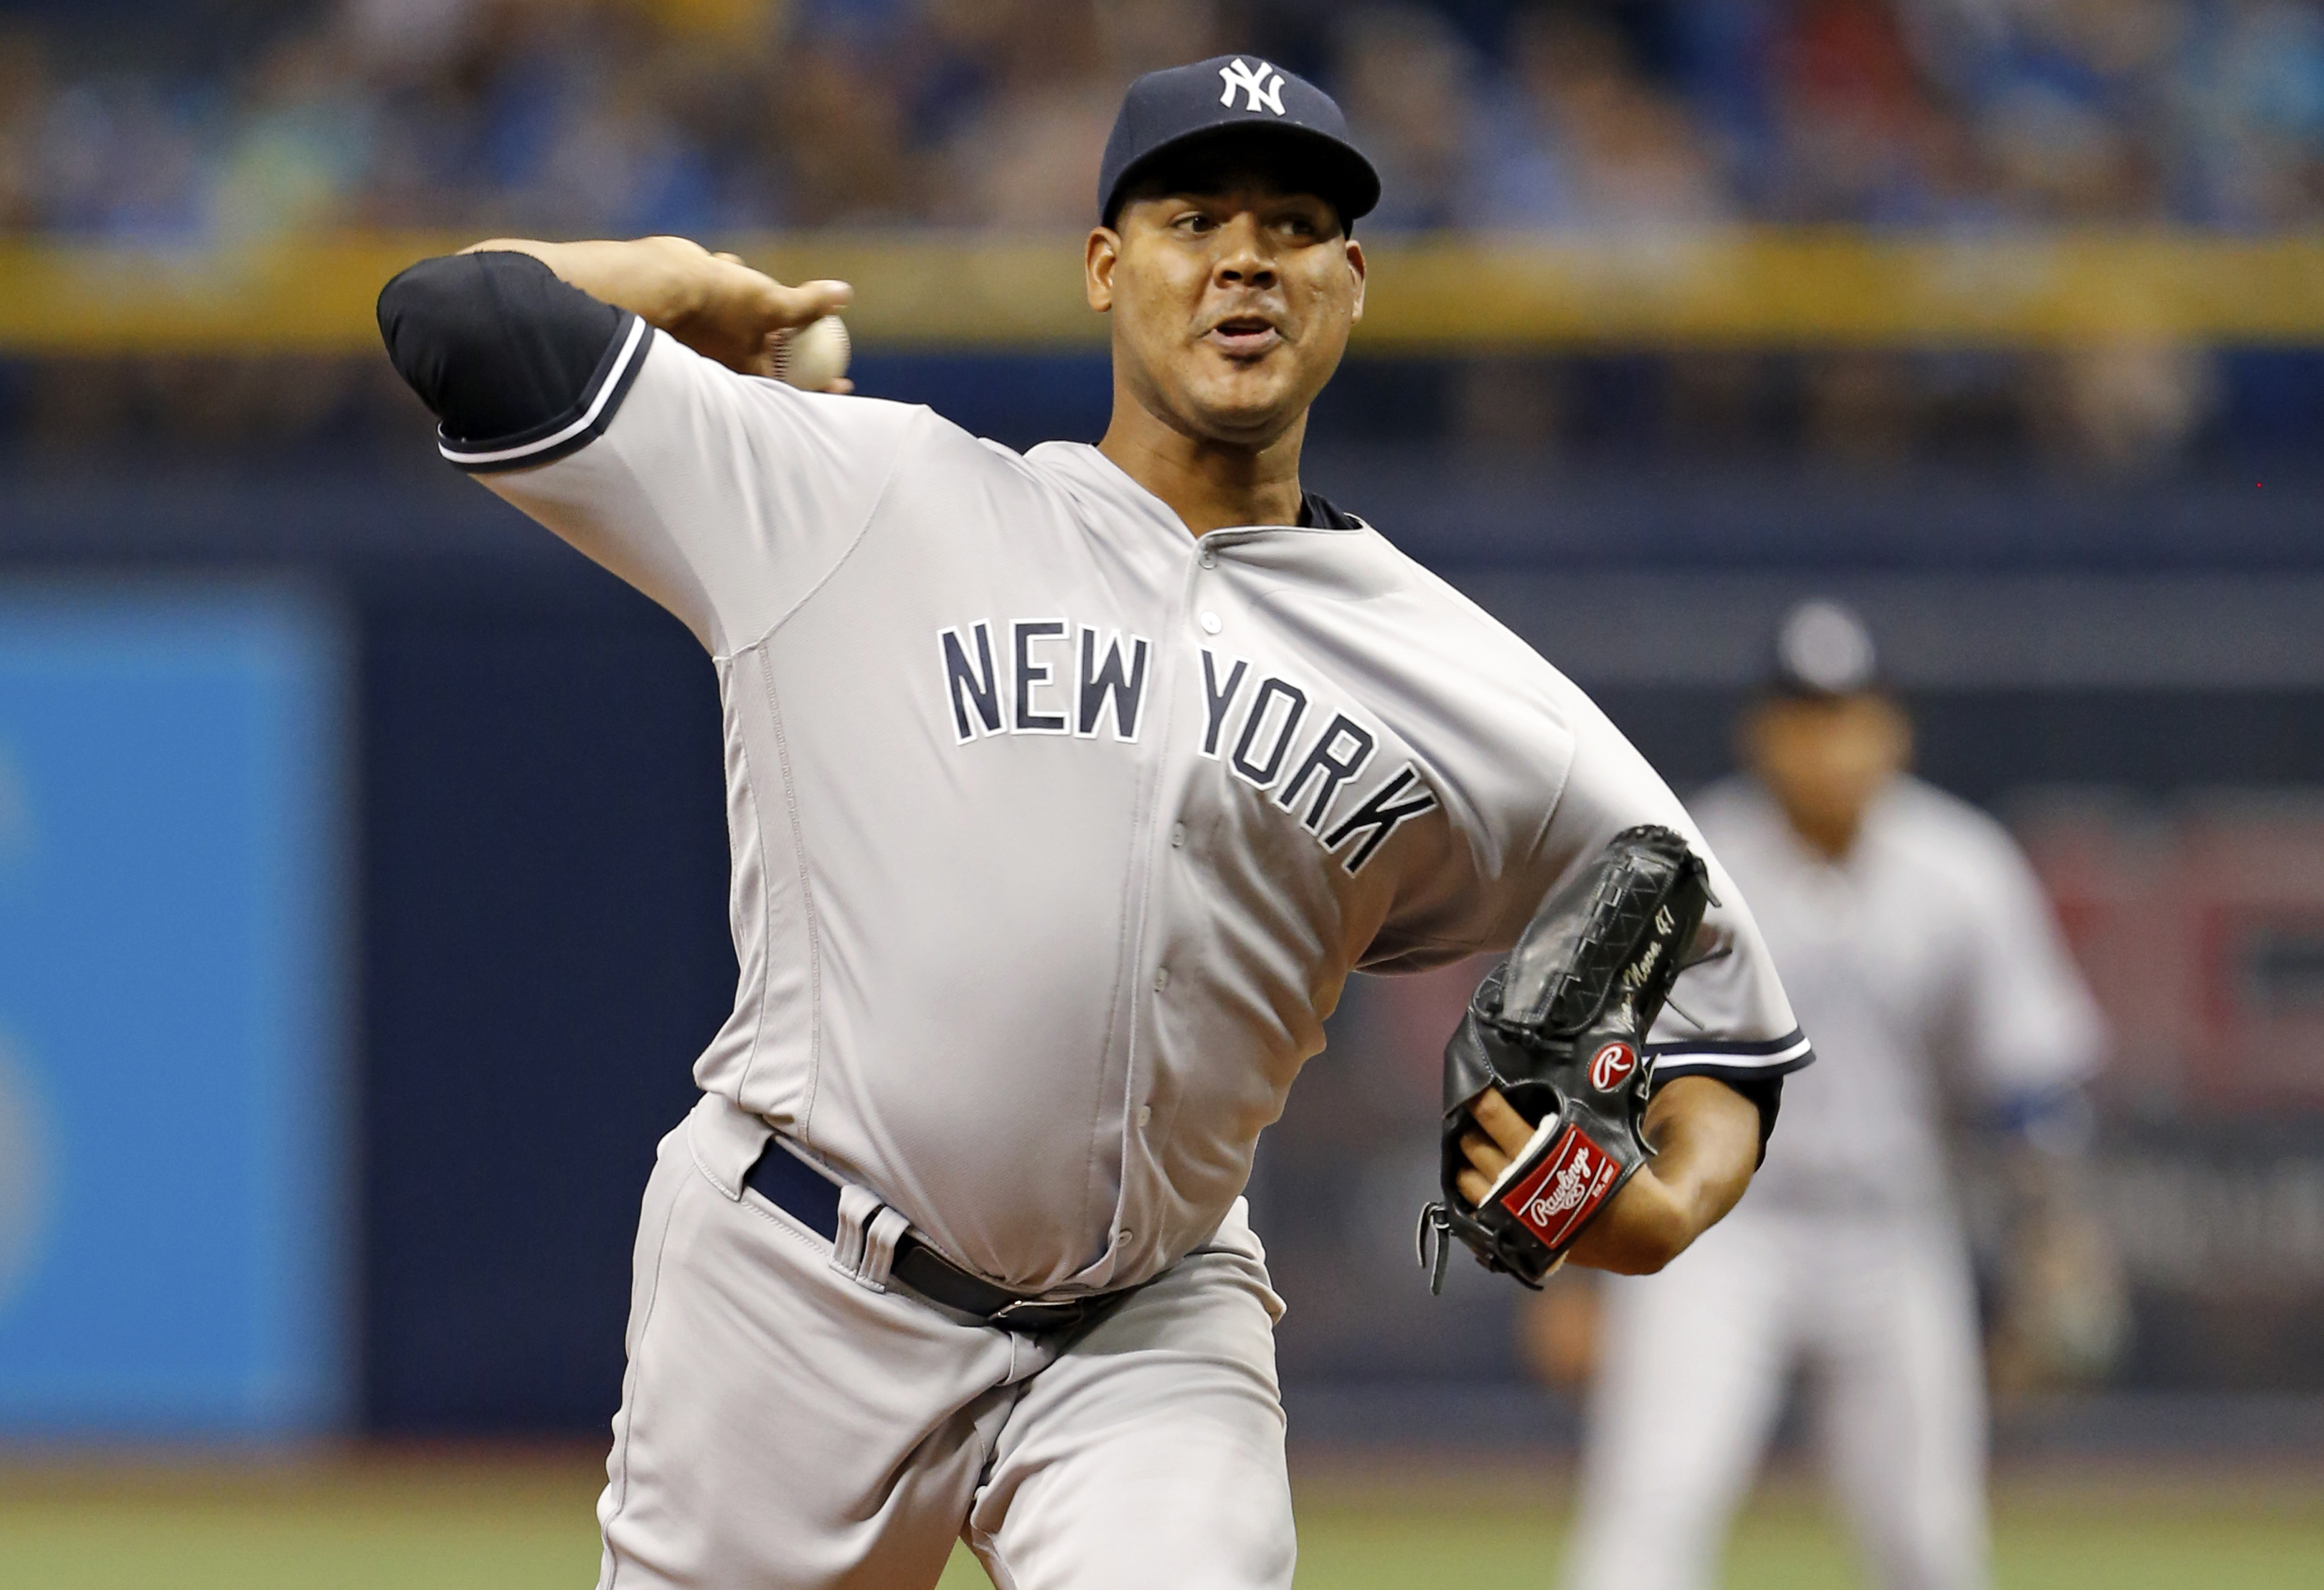 FILE - This July 29, 2016 file photo shows New York Yankees starting pitcher Ivan Nova throwing during the first inning of a baseball against the Tampa Bay Rays game in St. Petersburg, Fla. The retooling New York Yankees have dealt right-hander Ivan Nova